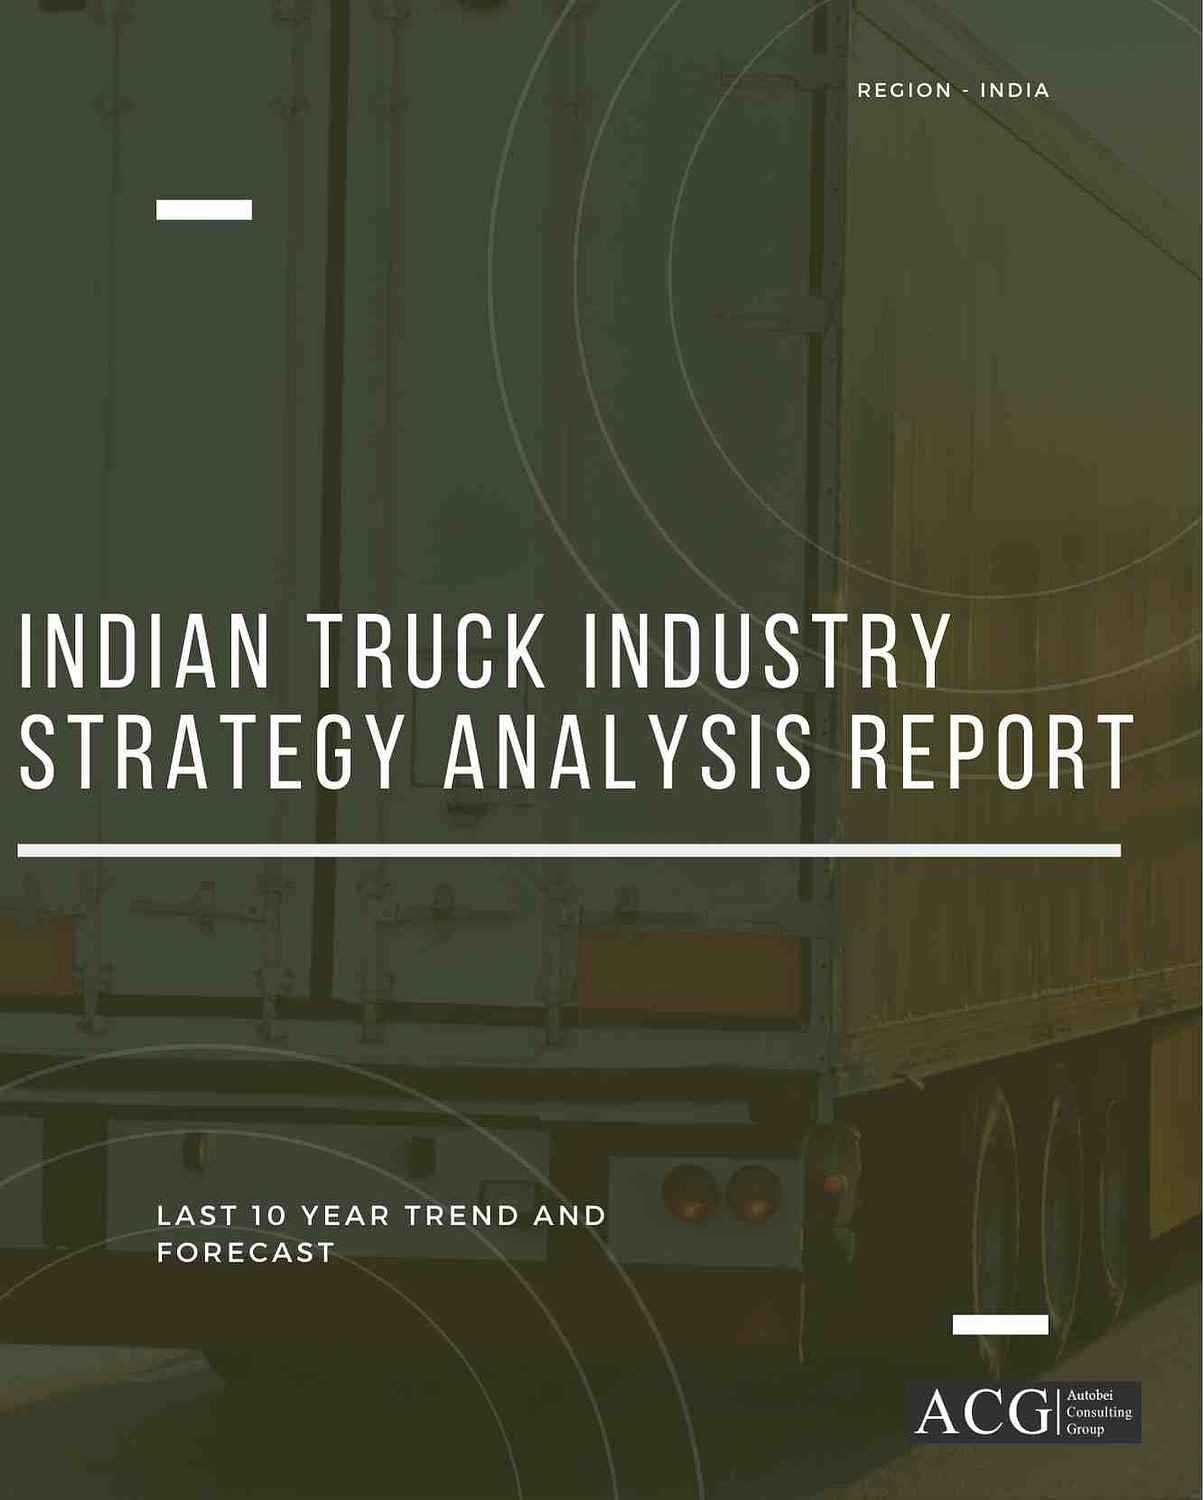 Indian Truck Industry Strategy Analysis Report and Forecast